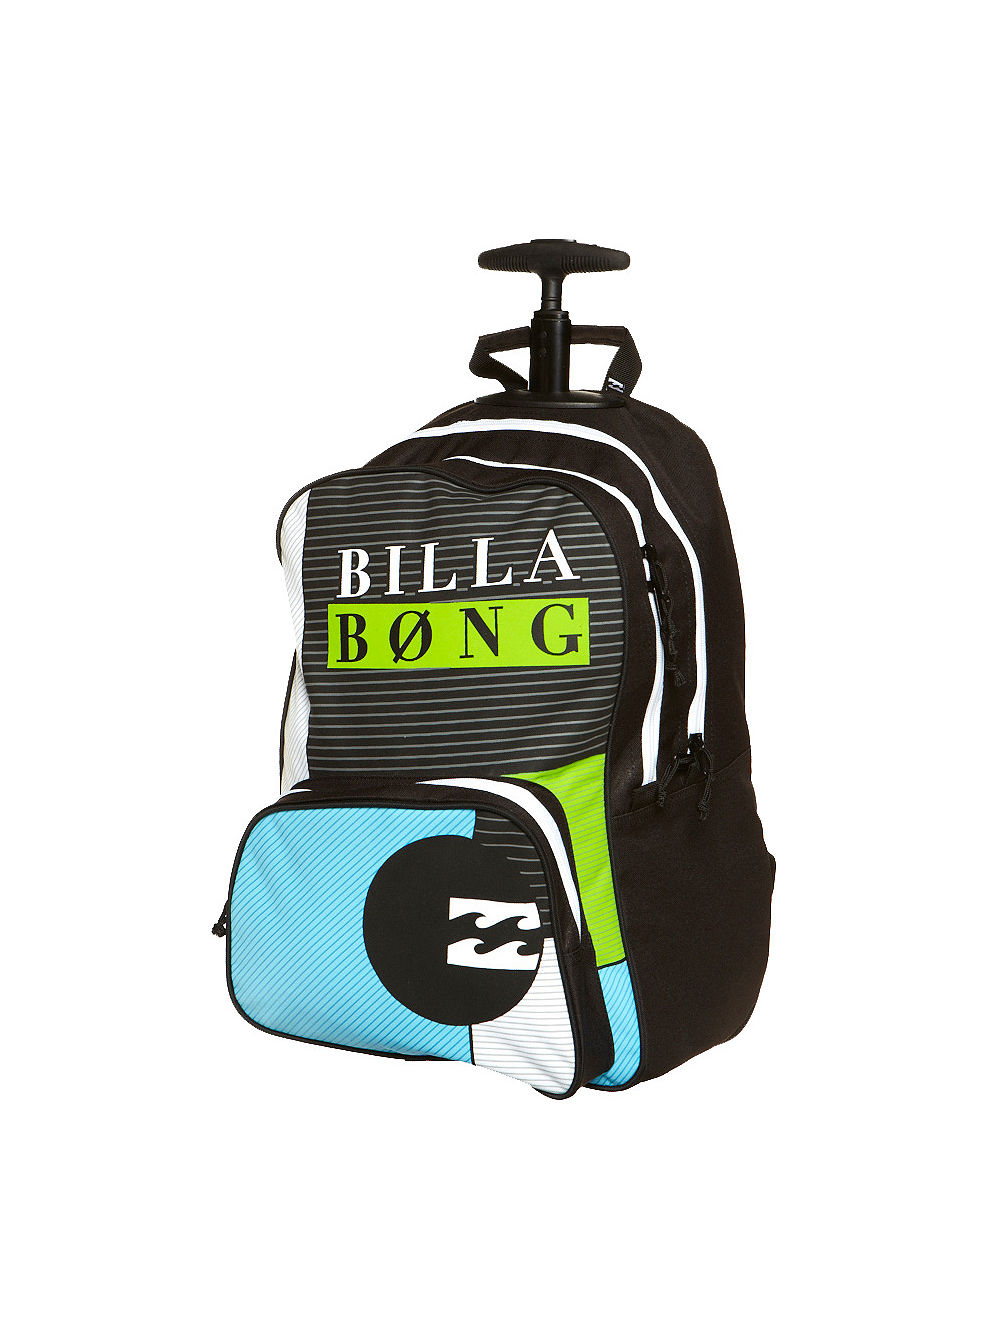 Billabong Rolling Backpack | Os Backpacks